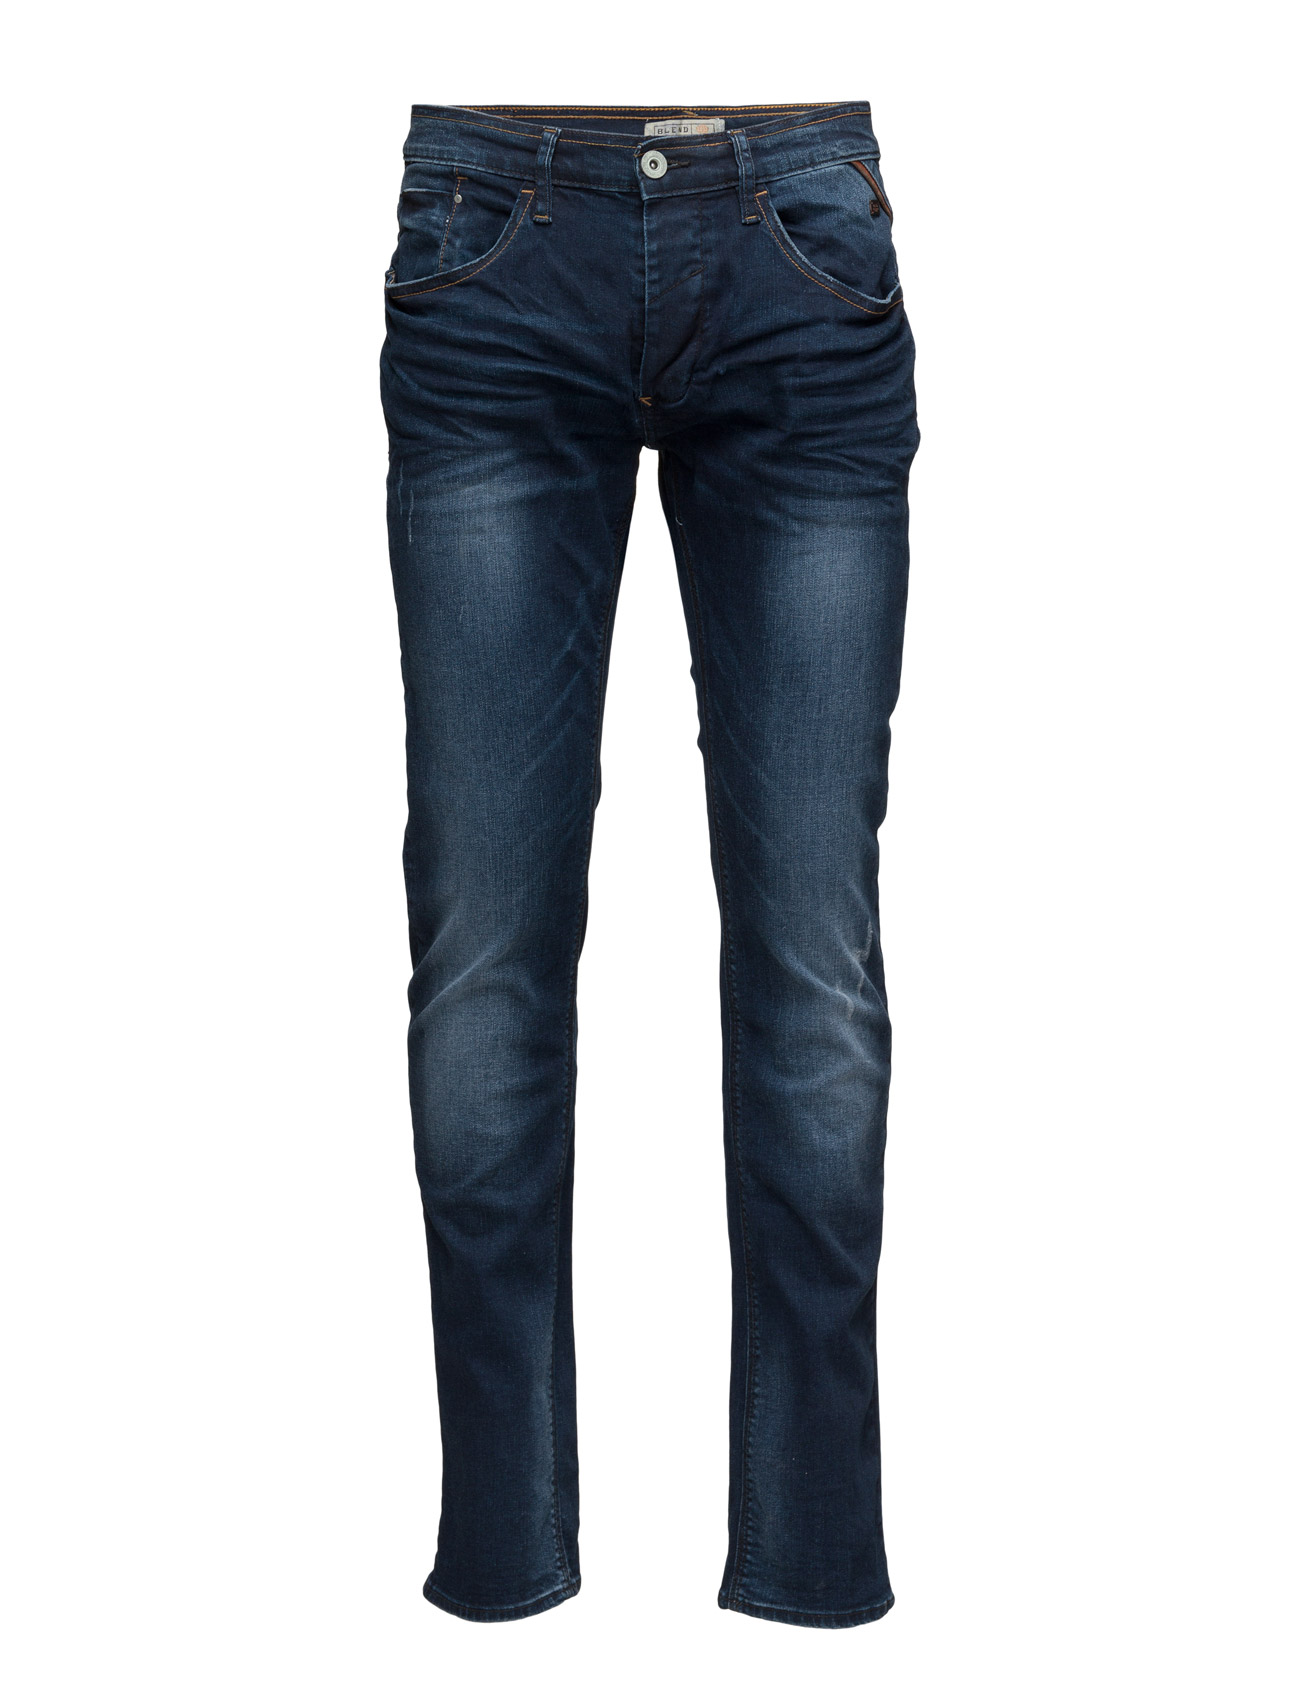 Image of Jeans - Noos (2431409205)